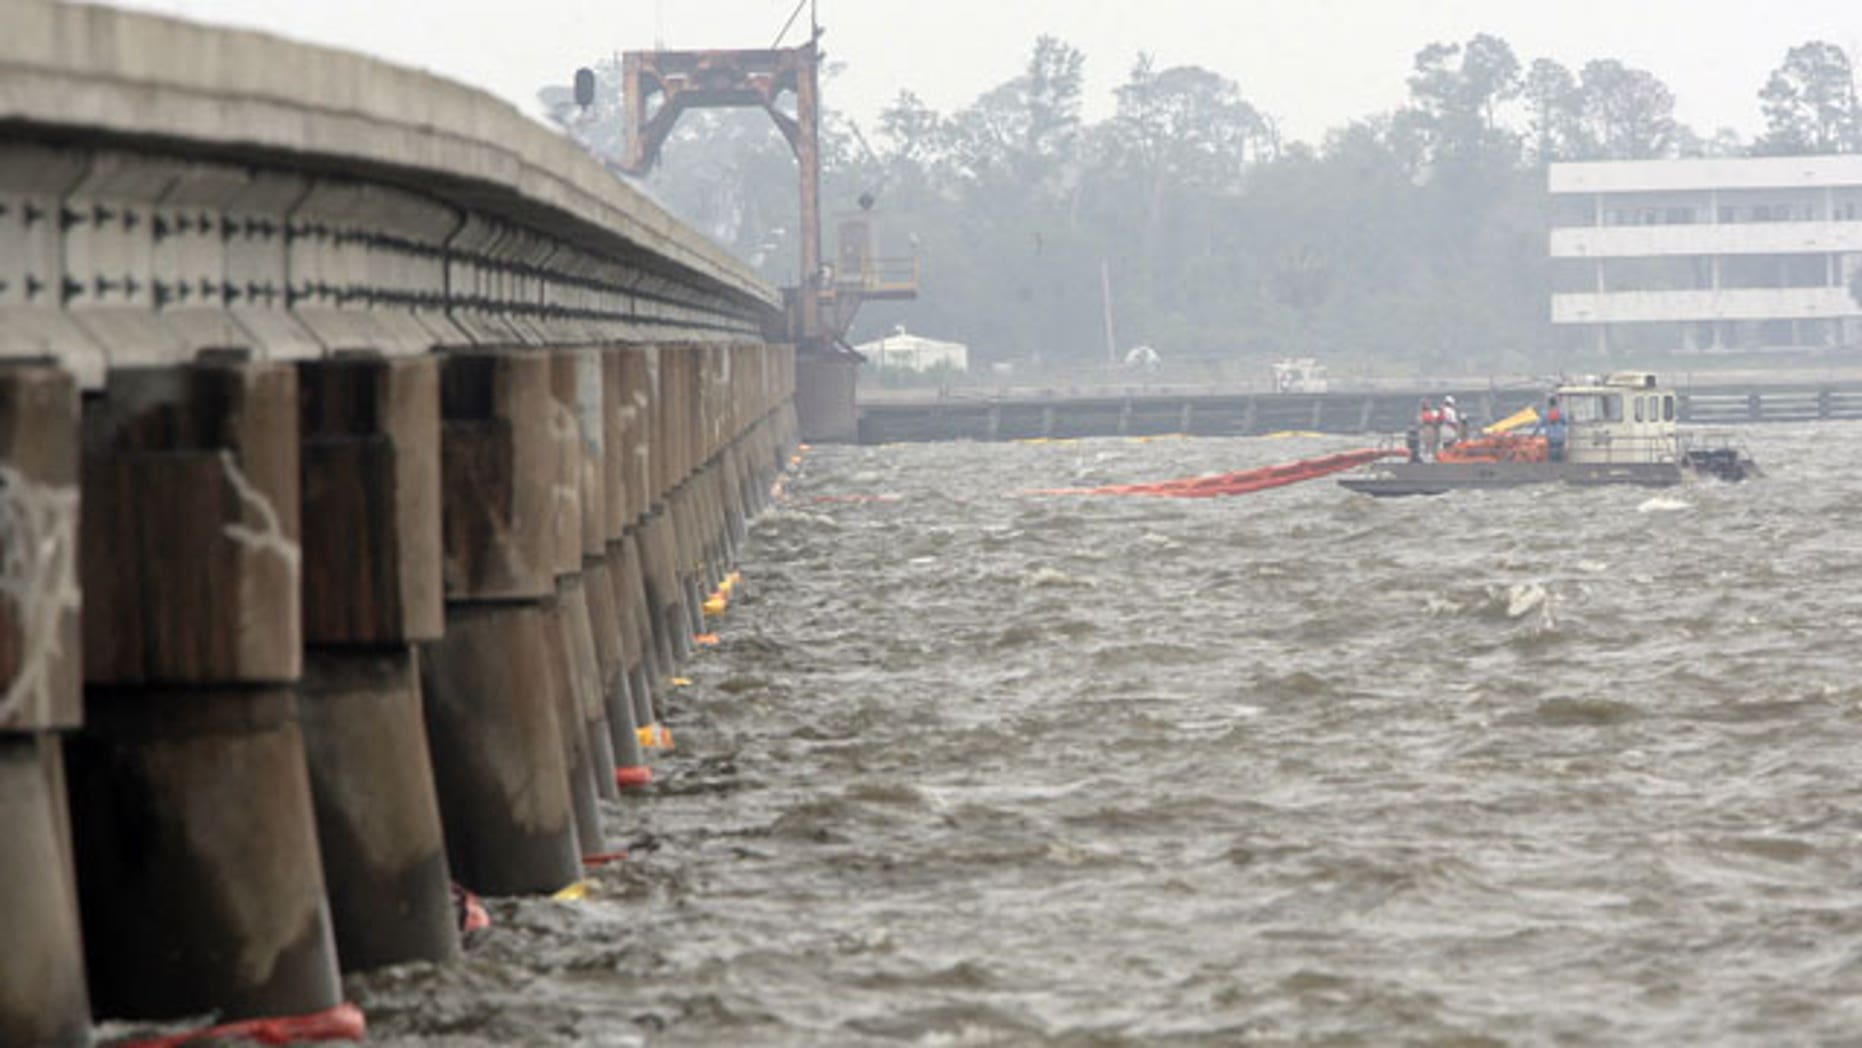 April 30: Workers spread oil booms along a railroad trestle that crosses the bay in Bay St. Louis, Miss., as preparations continue to head off damage from an inpending oil spill along the Gulf coast.